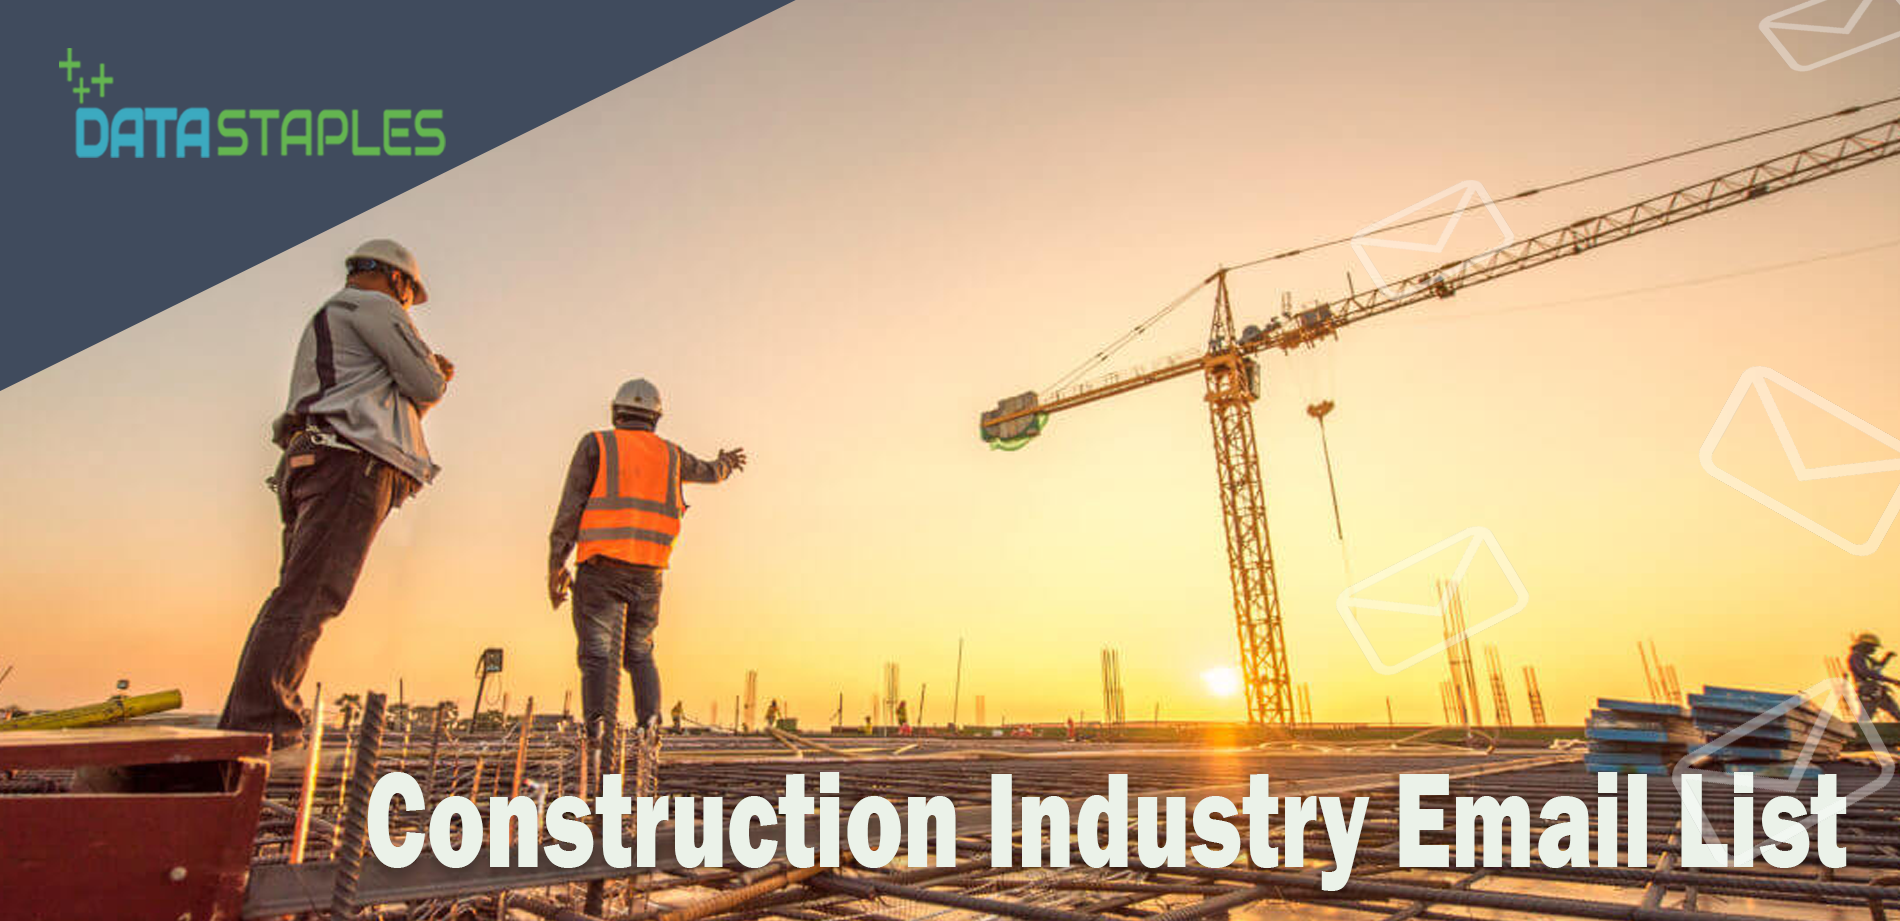 Construction Industry Email List   DataStaples